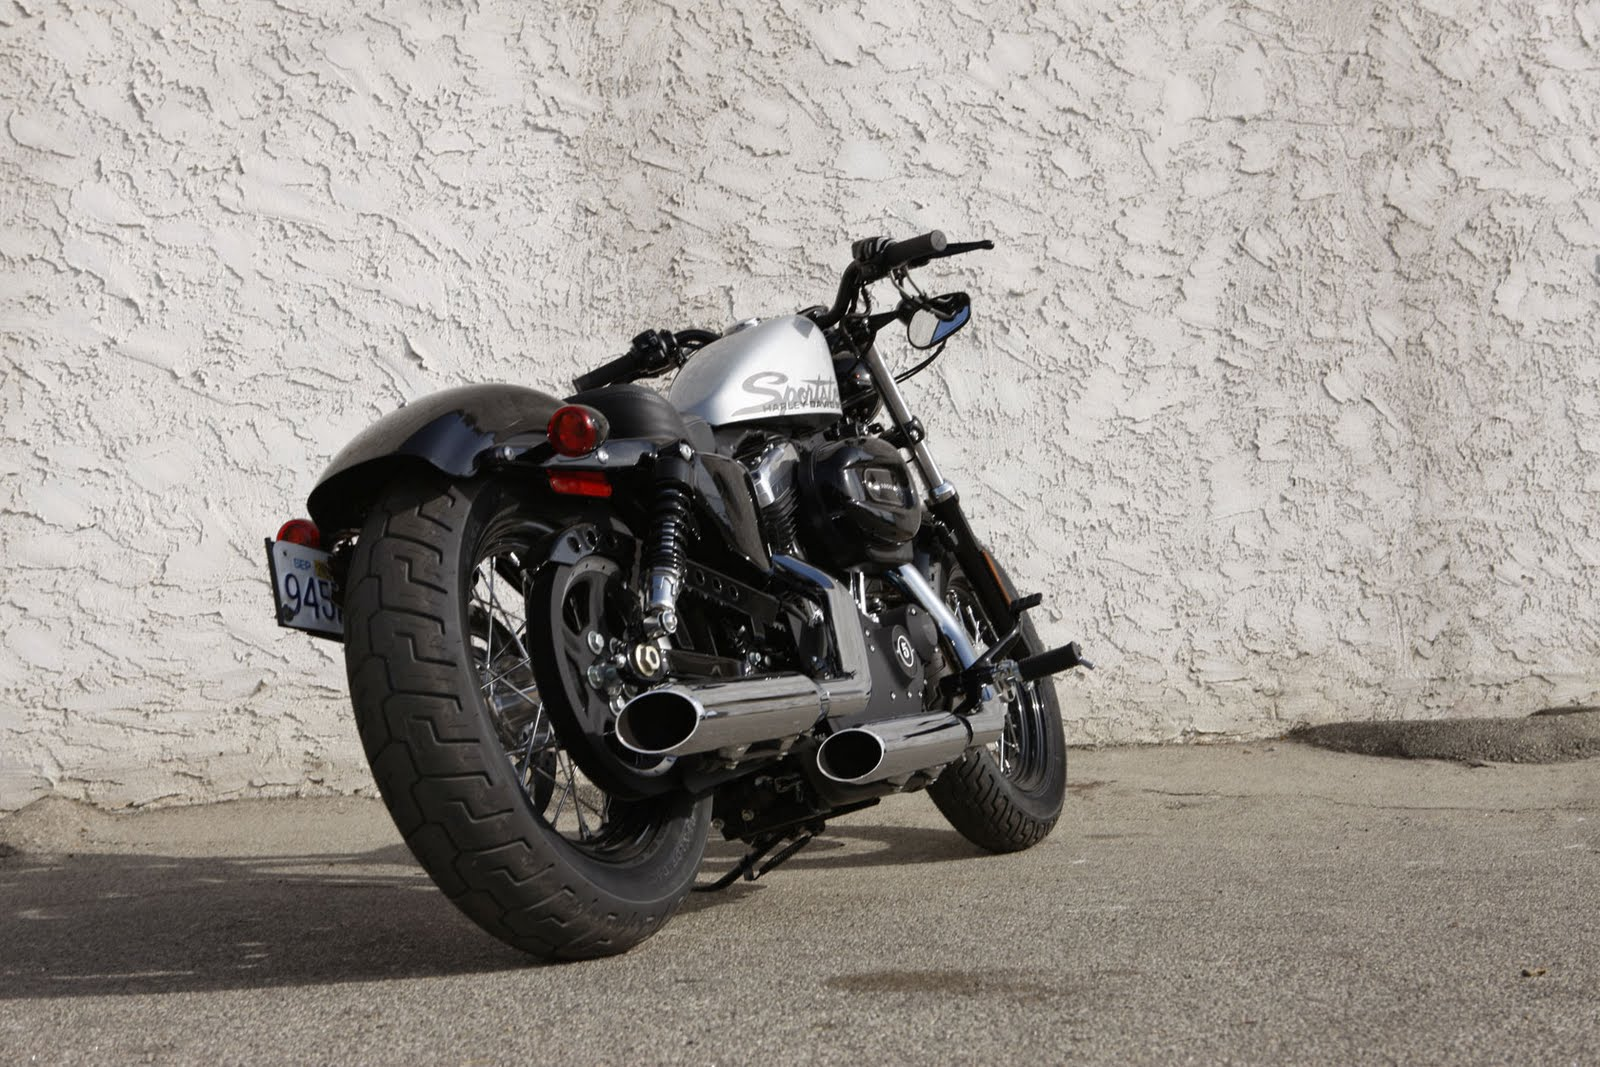 2010 Harley Davidson Sportster Forty Eight | Motorcycle Wallpapers .